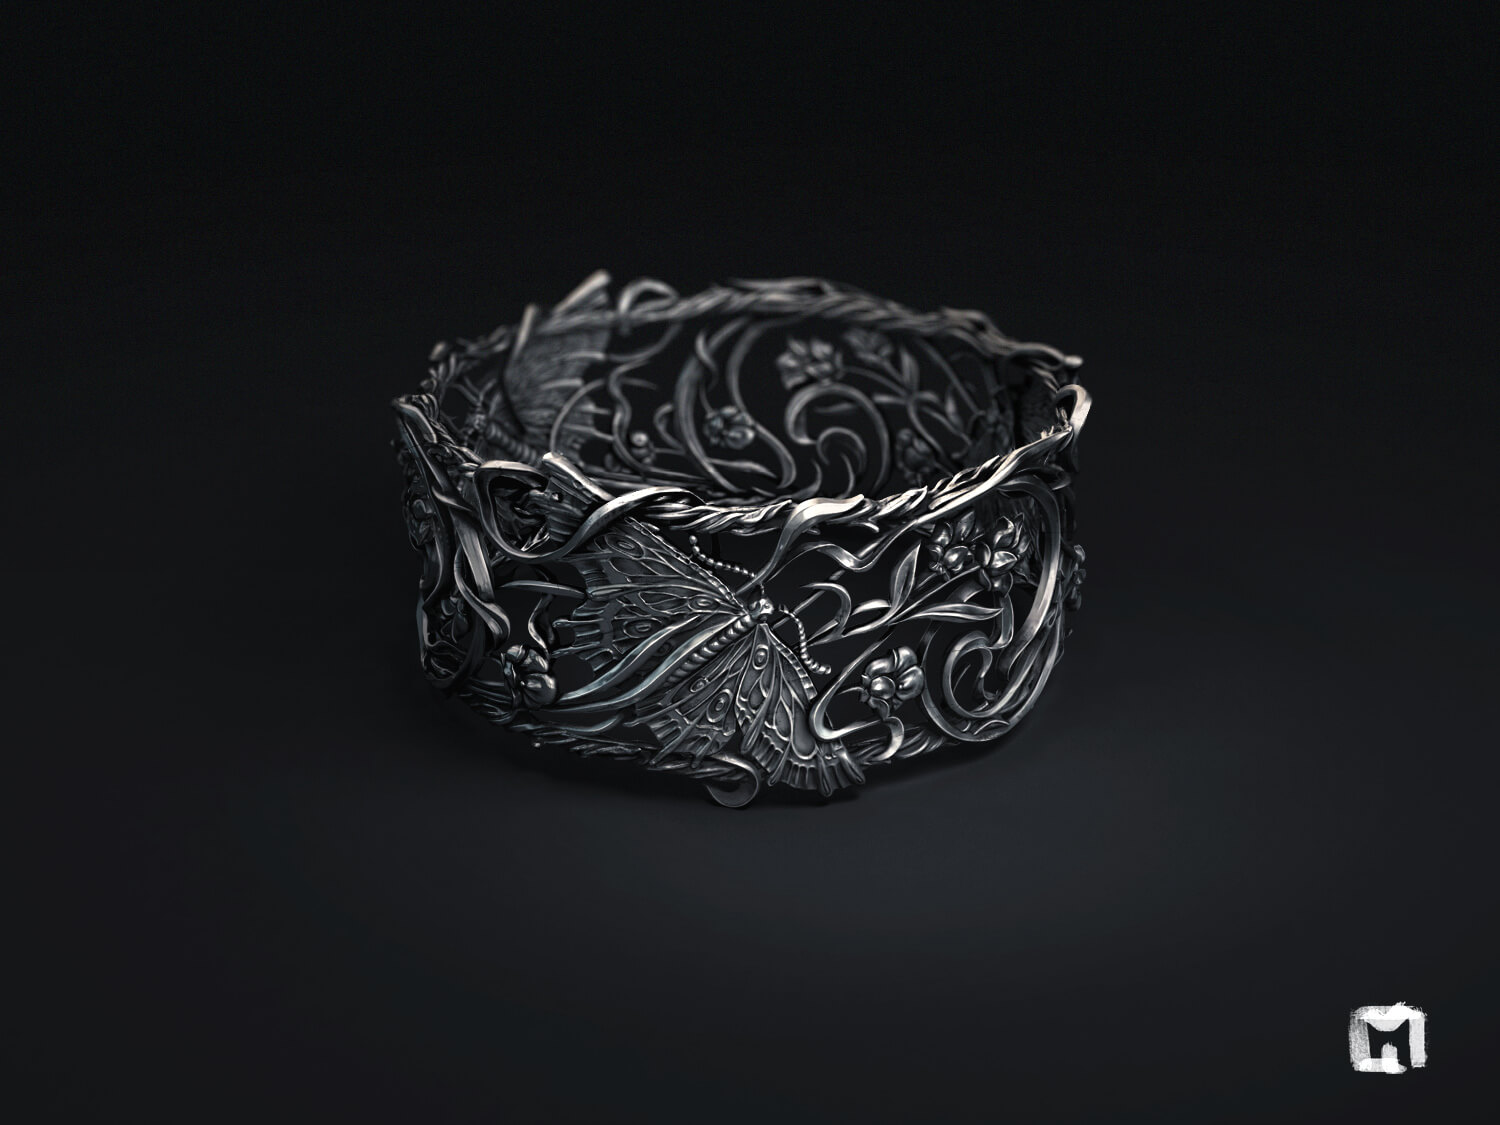 Photo credit : http://pixologic.com/zbrush/industry/jewelry/